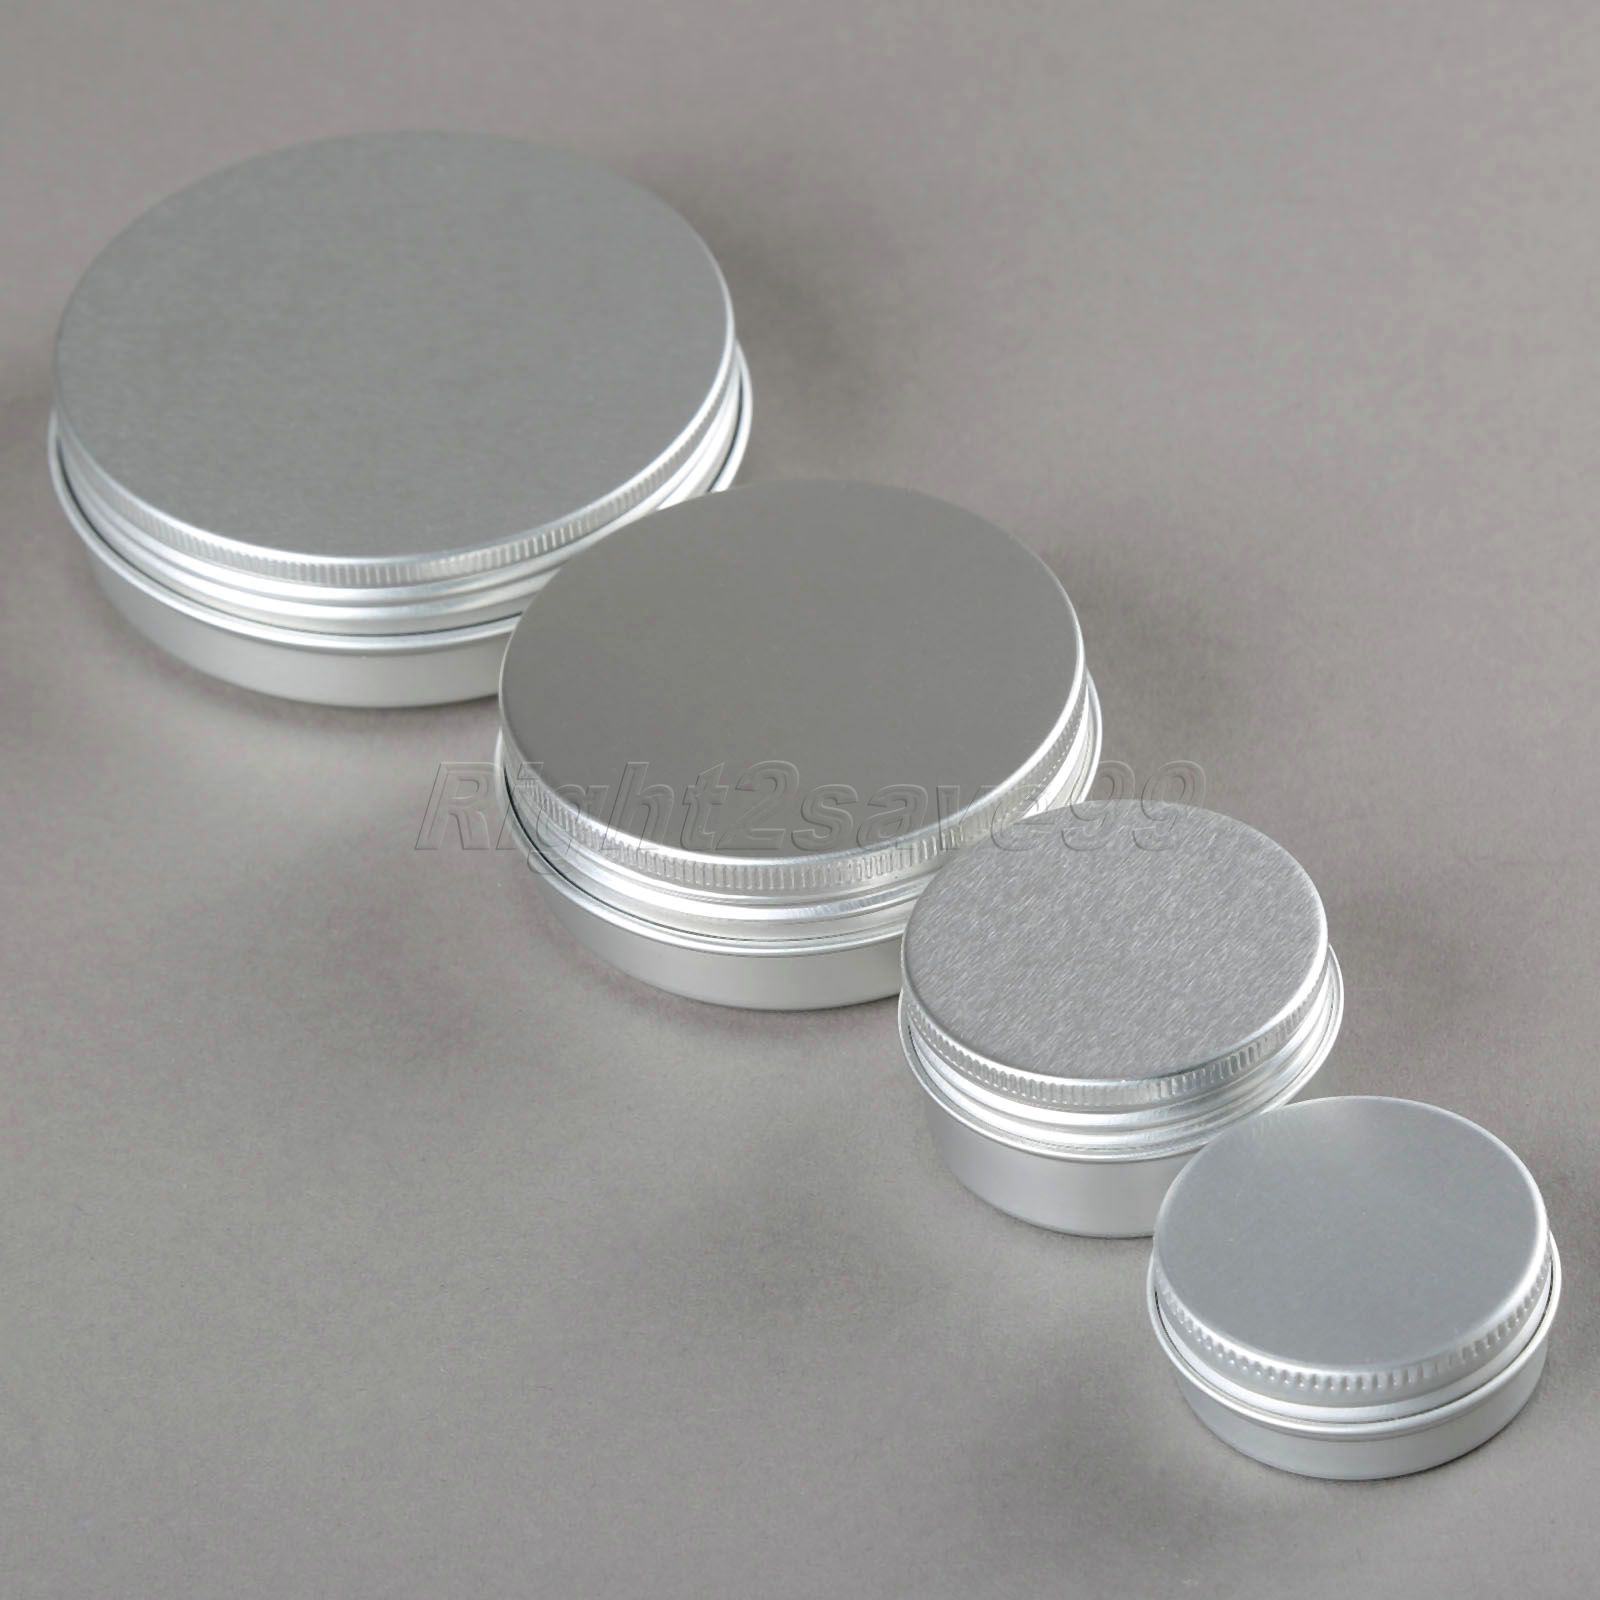 10PCS Aluminium Cosmetic jar 15g 30g 60g 100g Metal Cream Jars screw lid Silver tin ointment container bottle candle can box 6 pcs 15g 30g 50g 1oz empty upscale refillable black cosmetics cream glass bottle container pot case jar with black lid